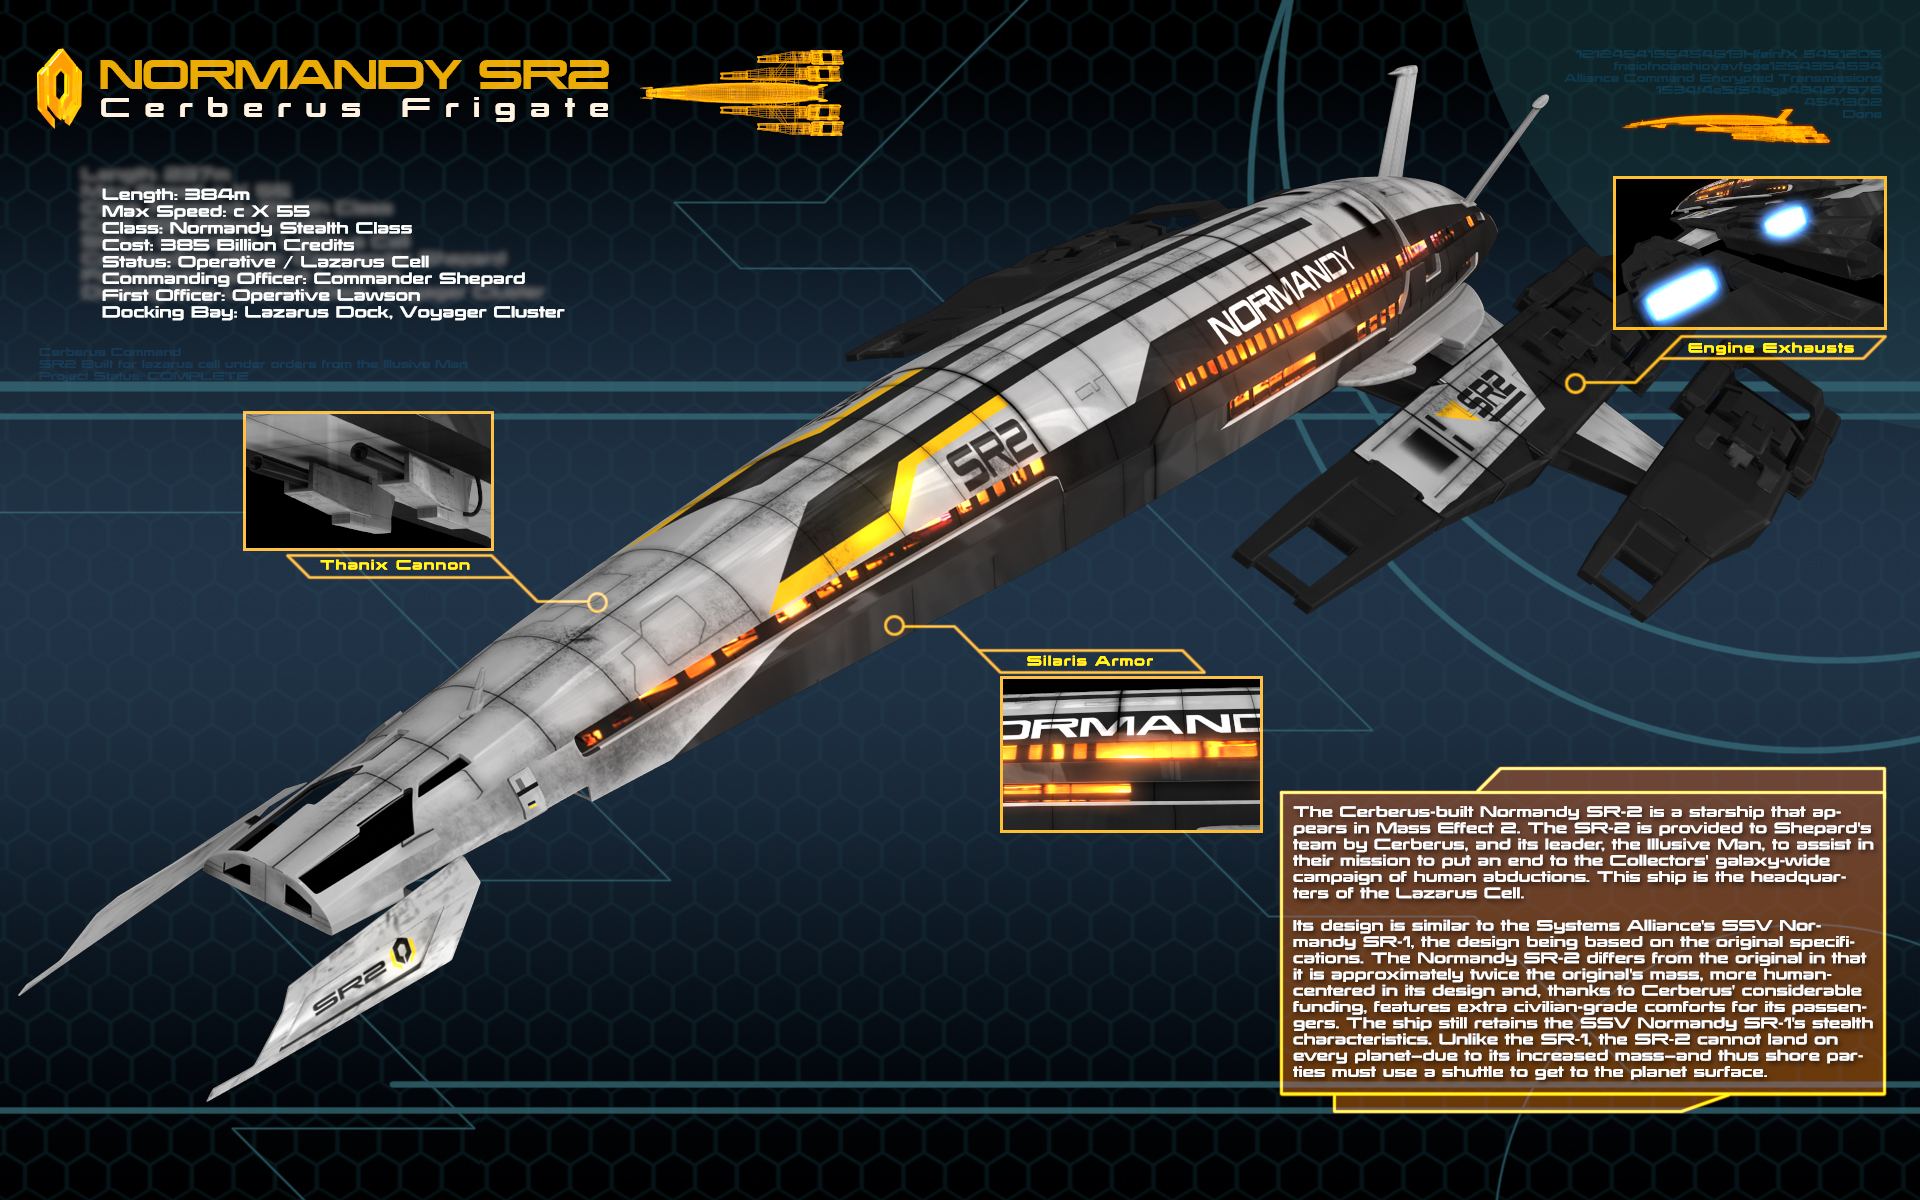 Ssv Normandy Sr 2 18 Ship Replica: Normandy SR2 Infography 2.0 By Nico89-fx On DeviantArt